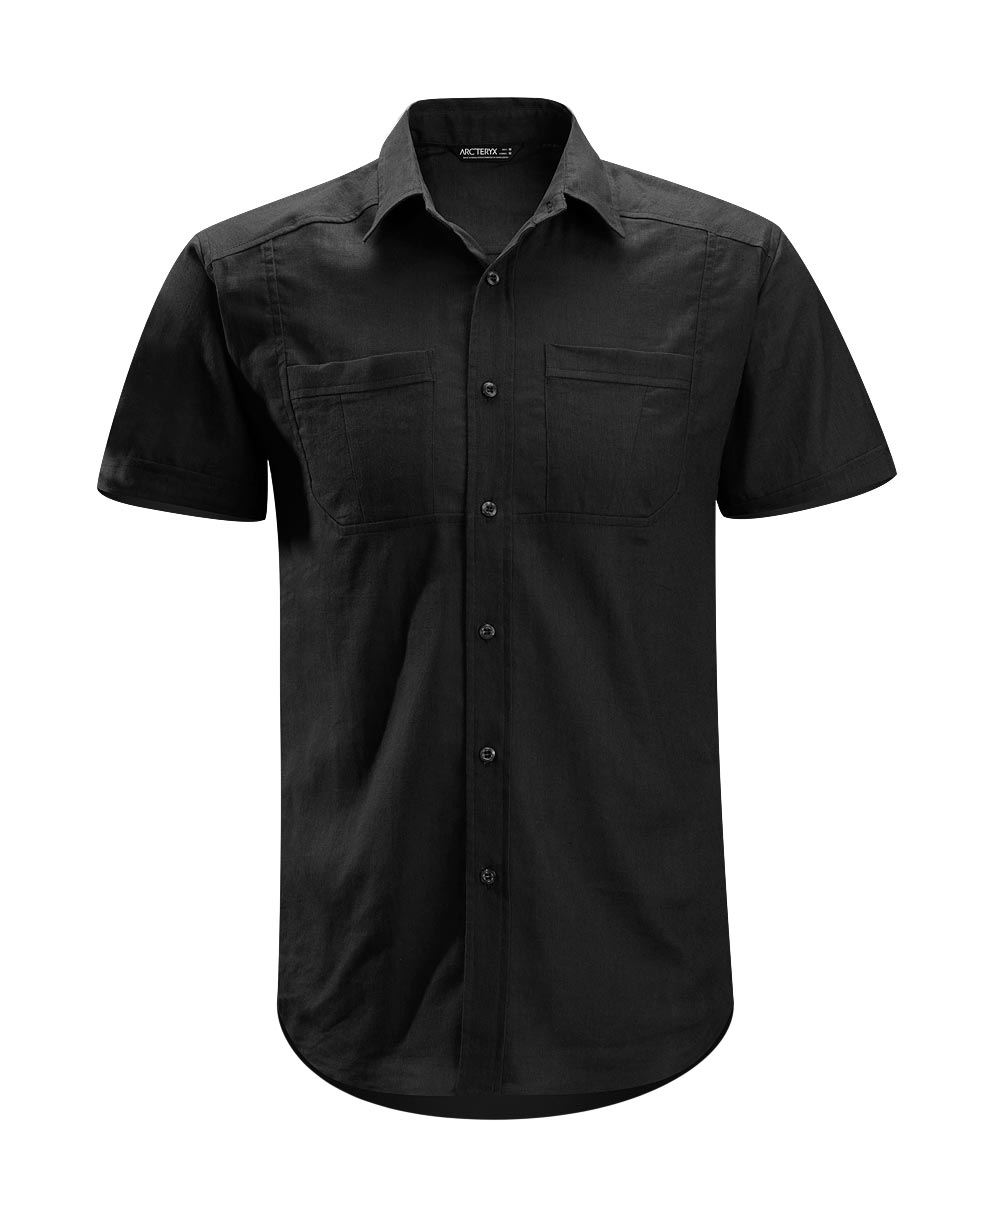 Arcteryx Men Black Ravelin Shirt SS - New